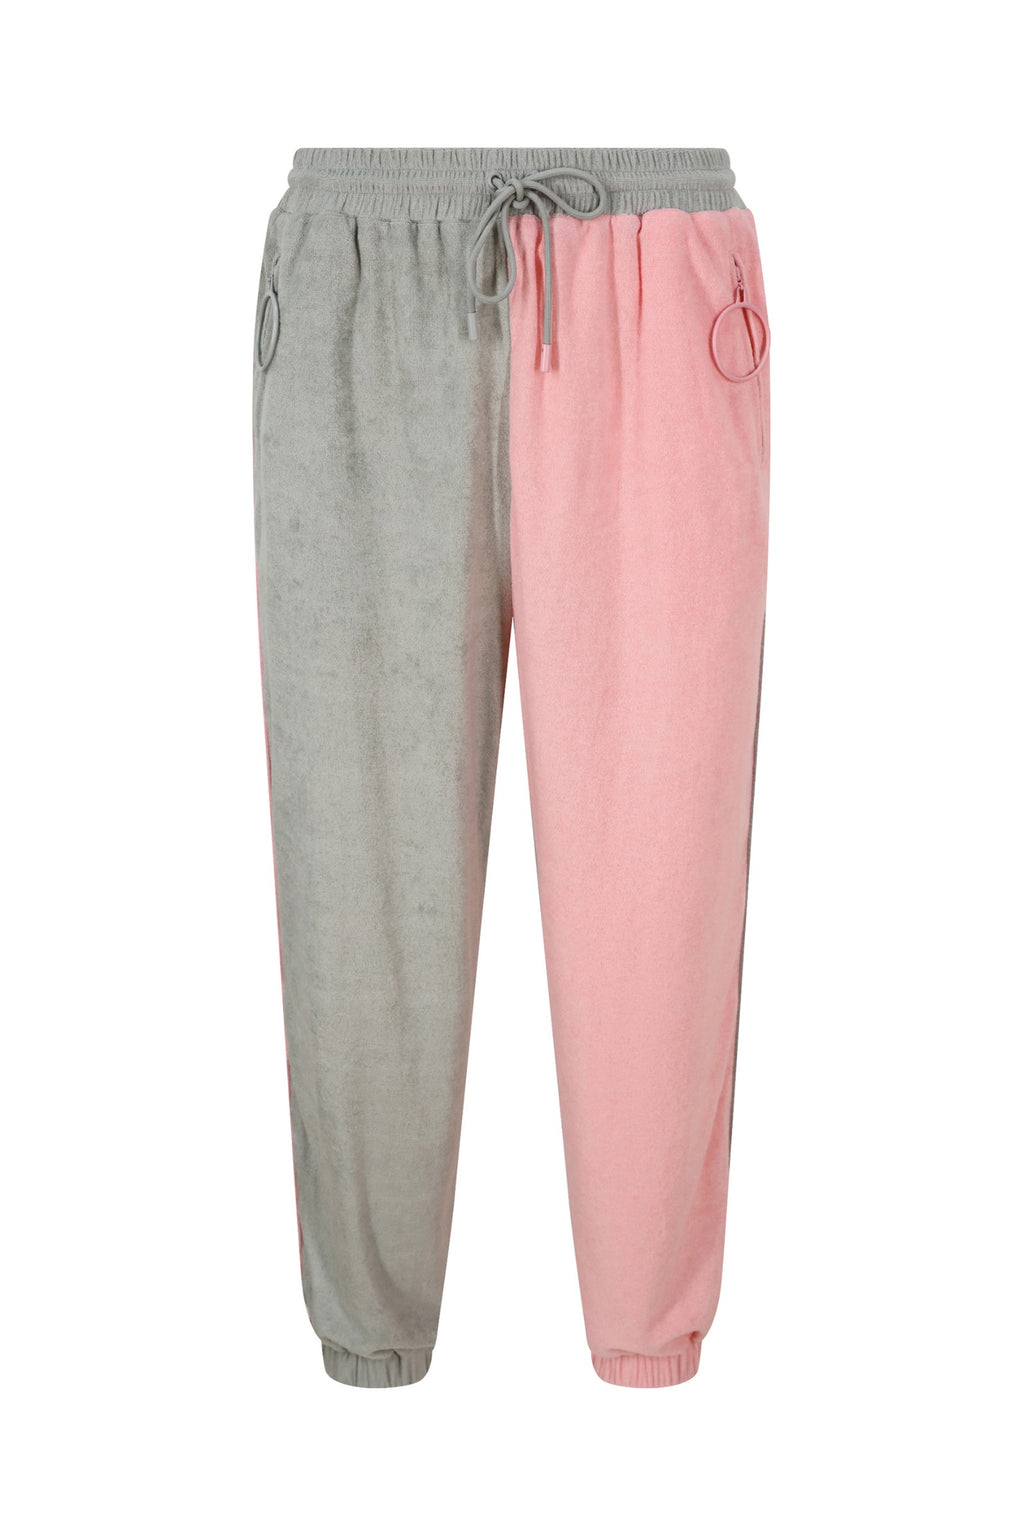 Unisex Grey and Pink Track Trousers